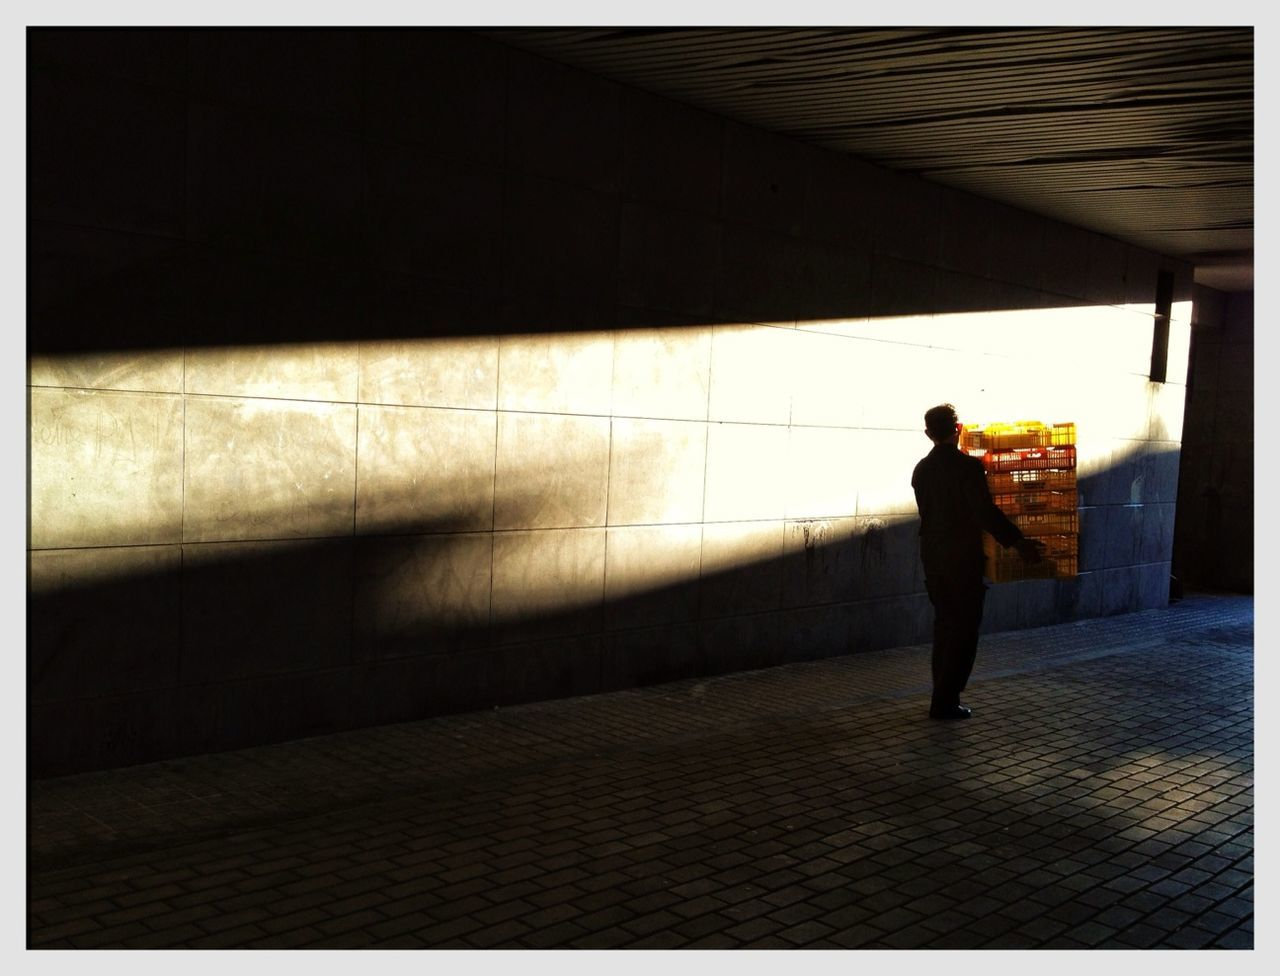 Silhouette man carrying crate in tunnel